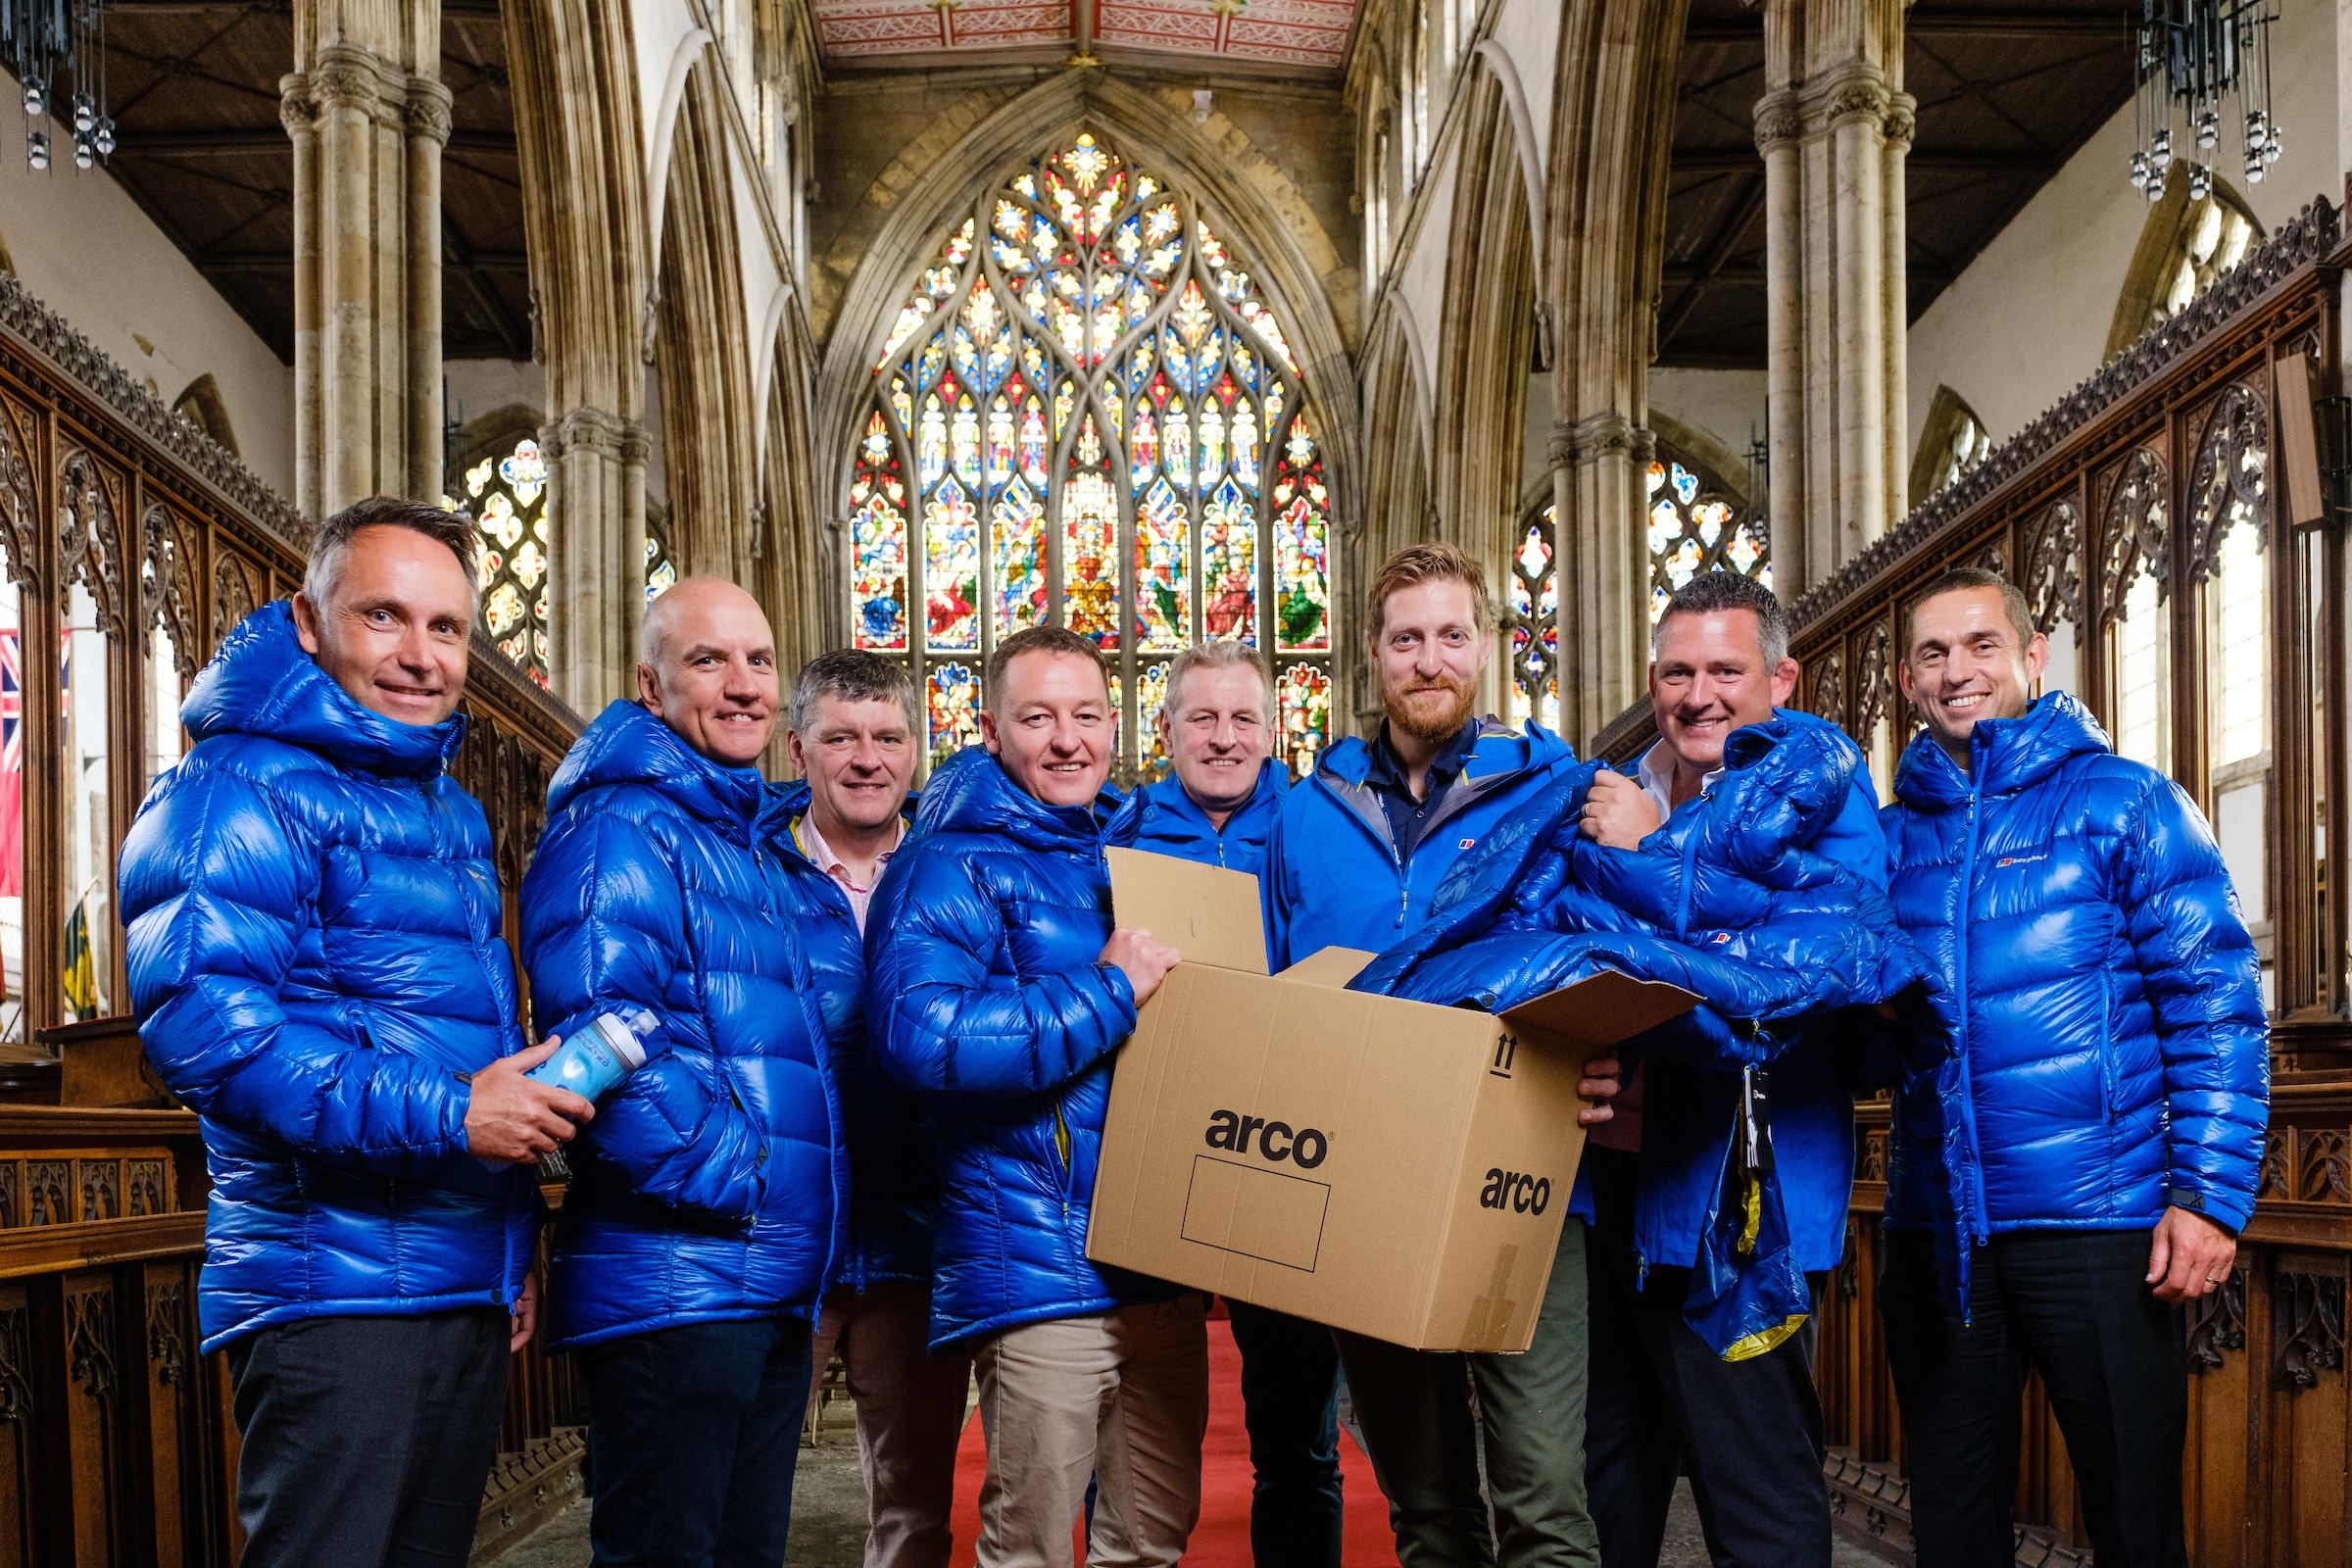 Summit Club sponsor representatives Neil Riseham (Arco), centre left, and Andy Parkinson (Spencer Group) with some of the donated Arco clothing, joined by Kilimanjaro climb team members, from left, Nick Ward (Alan Wood and Partners), Jonathan Leafe (Strawberry), Brian Gilliland (Holy Trinity), Andy Allenby (Allenby Commercial), Nic Marshall (ResQ Outsource Solutions) and Dave Garness (Garness Jones).